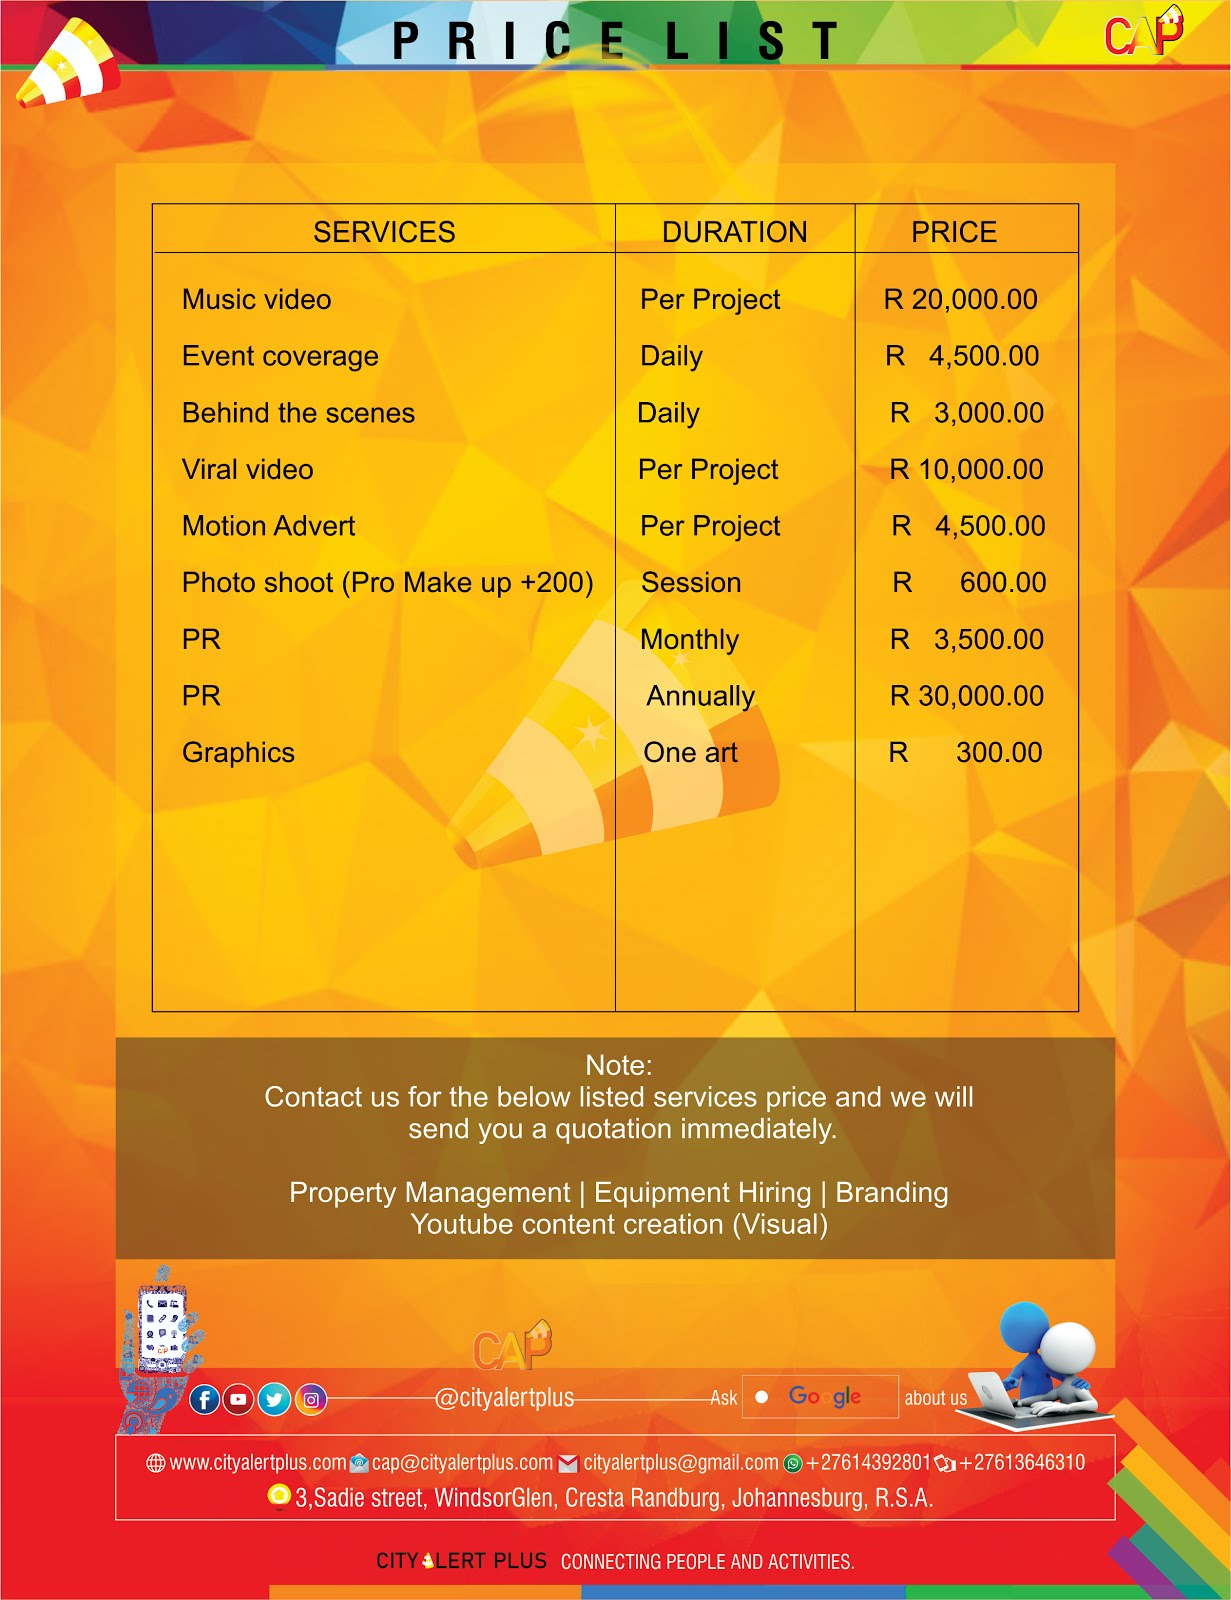 CAP - Price List